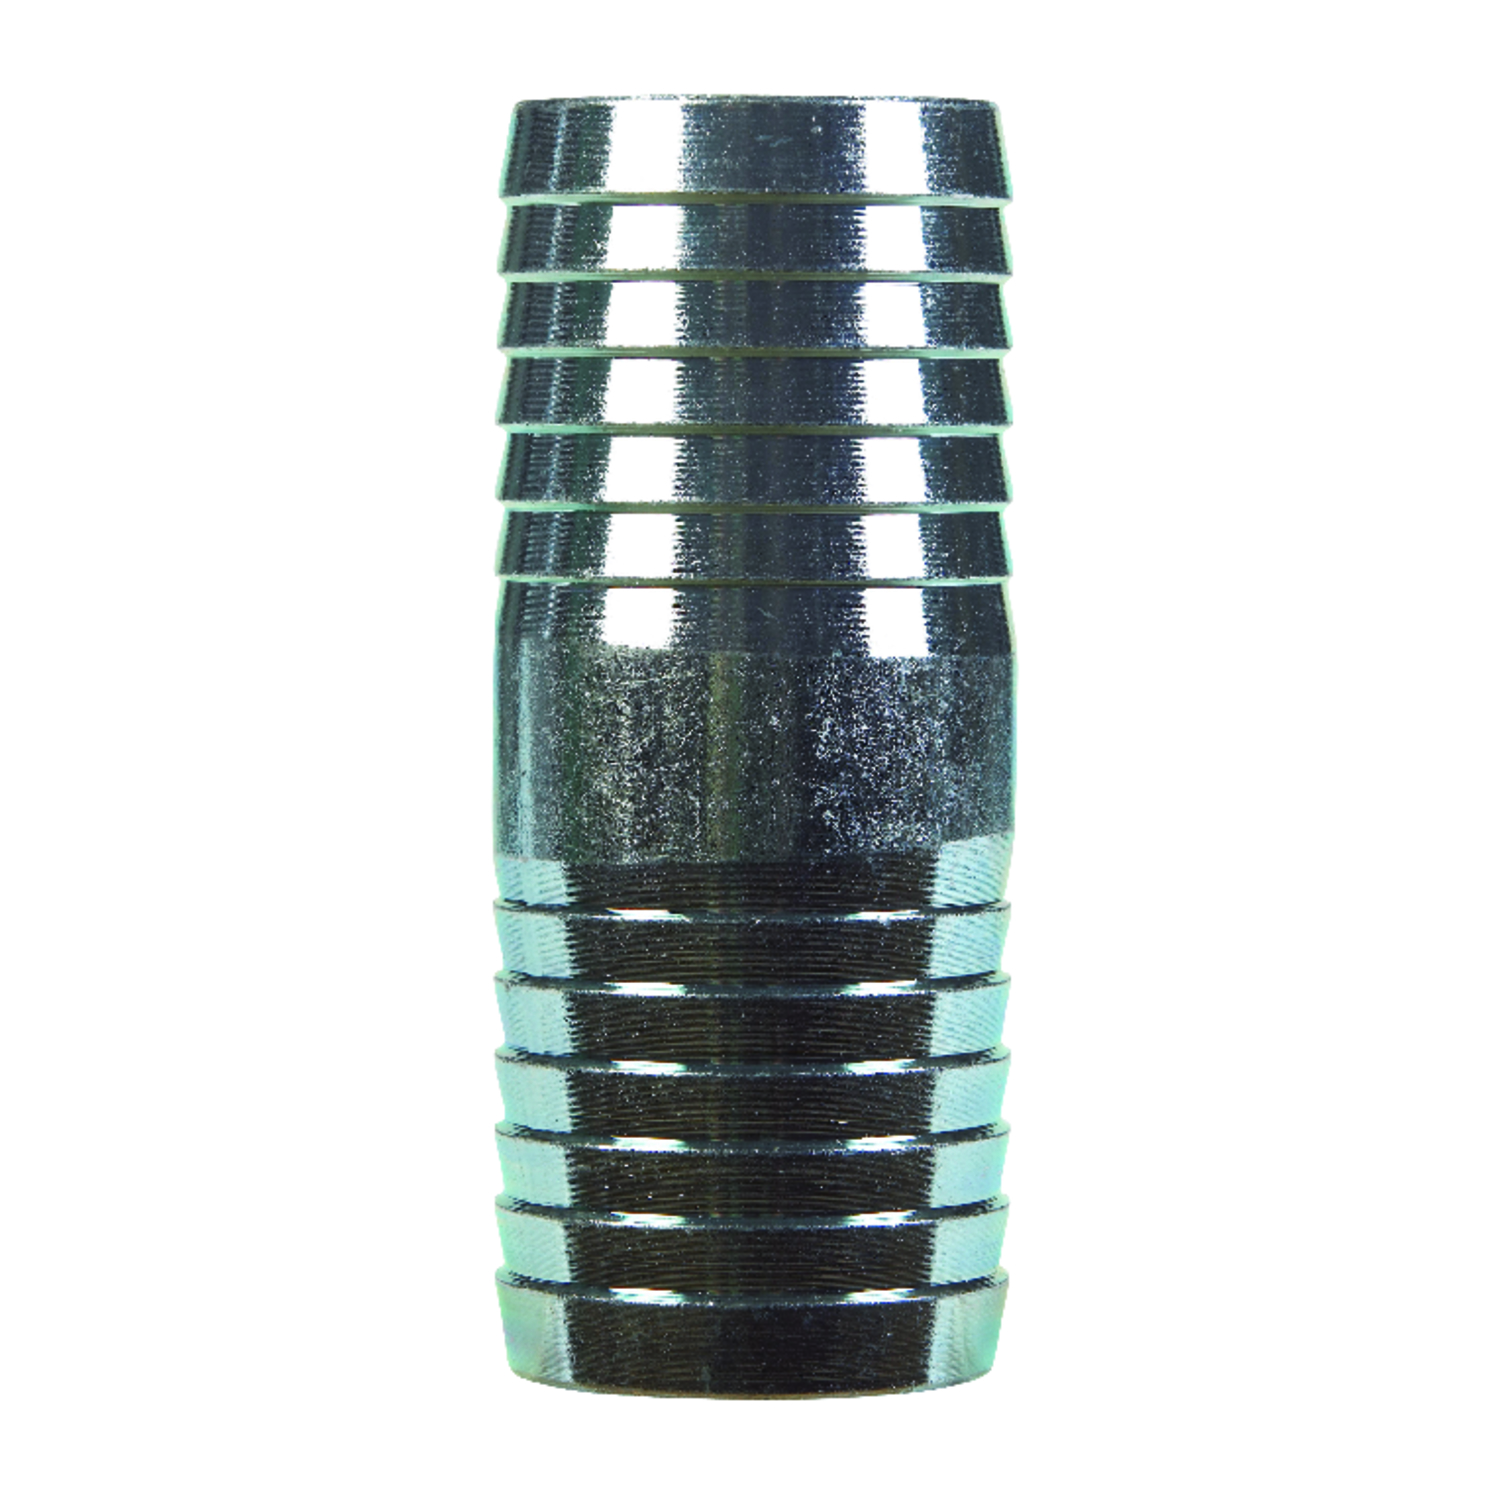 B & K  1-1/2 in. Barb   x 1-1/2 in. Dia. Barb  Galvanized  Galvanized Steel  Coupling